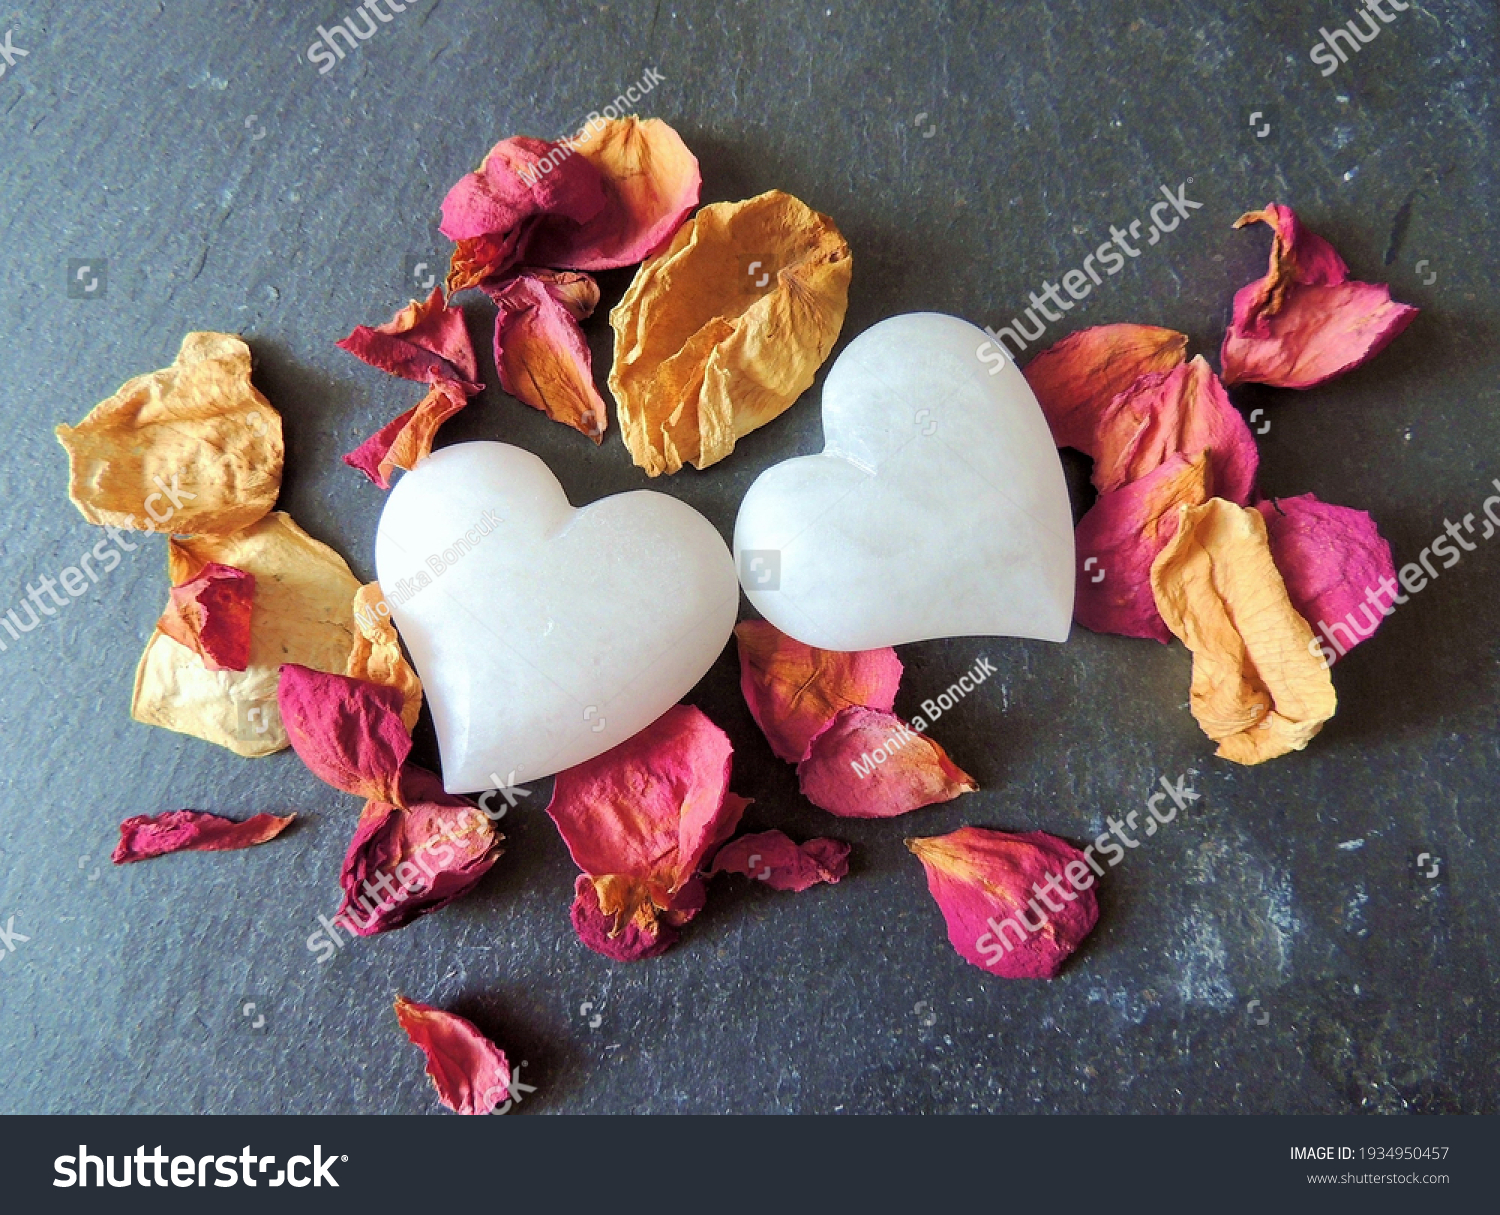 stock-photo-two-hearts-and-dry-rose-peta